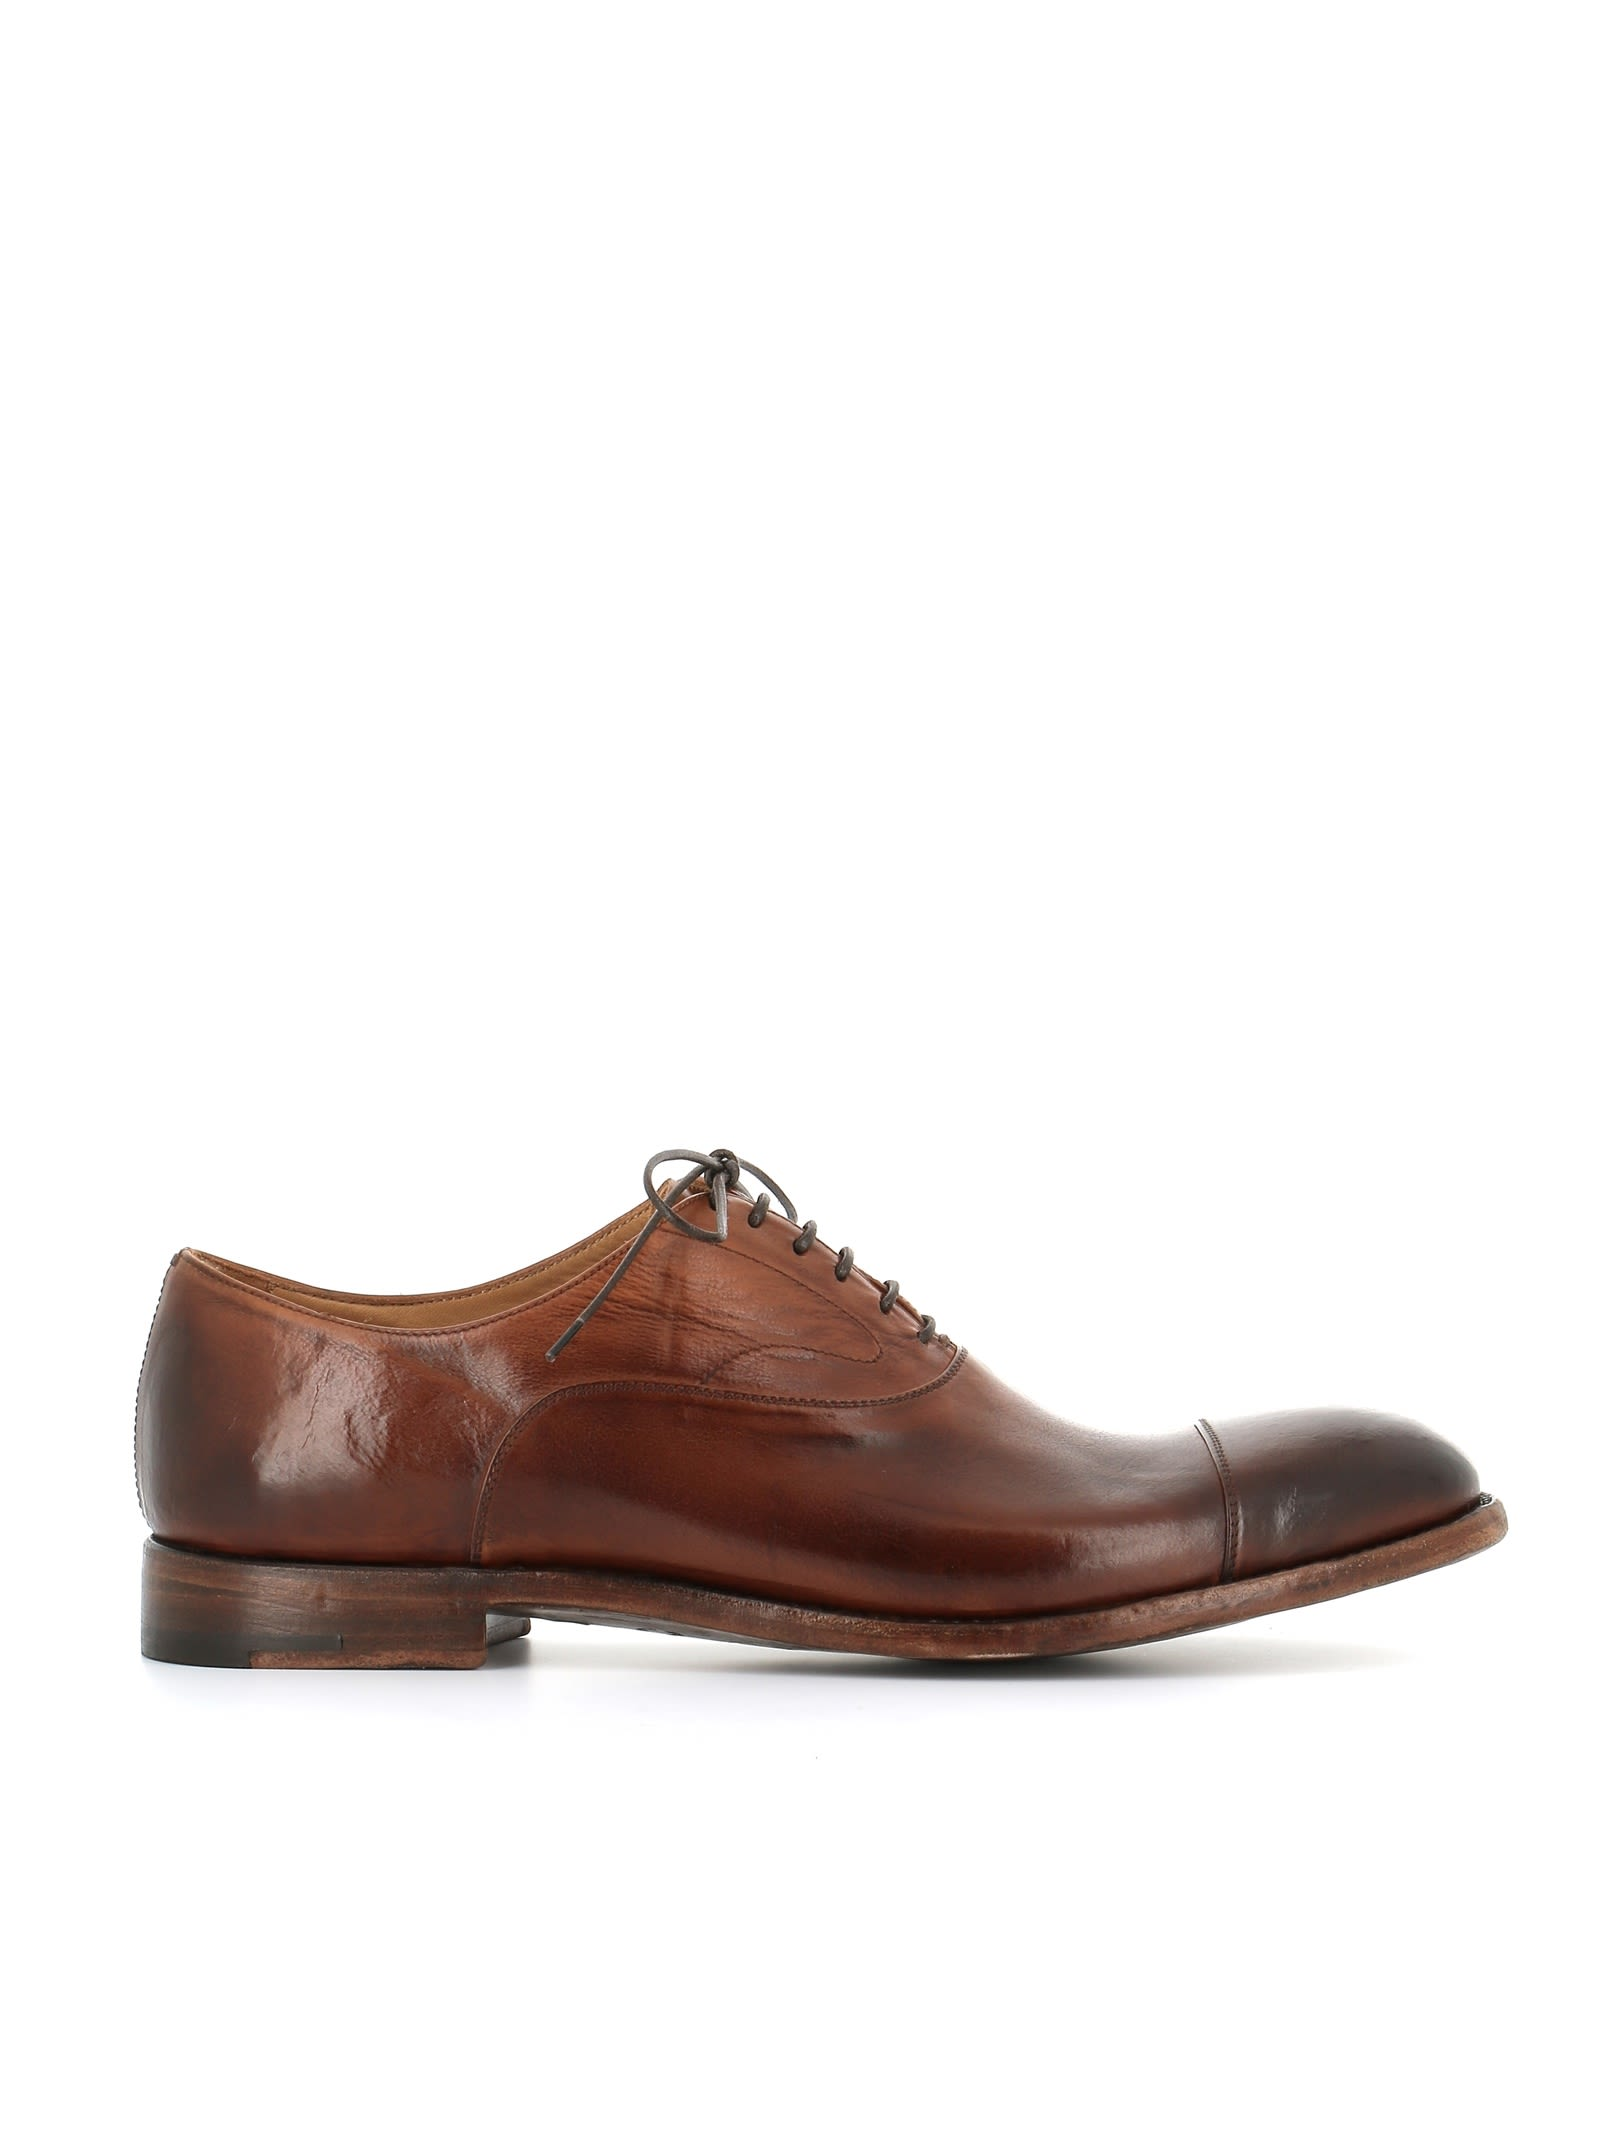 ALBERTO FASCIANIOxford shoes enxbT5K